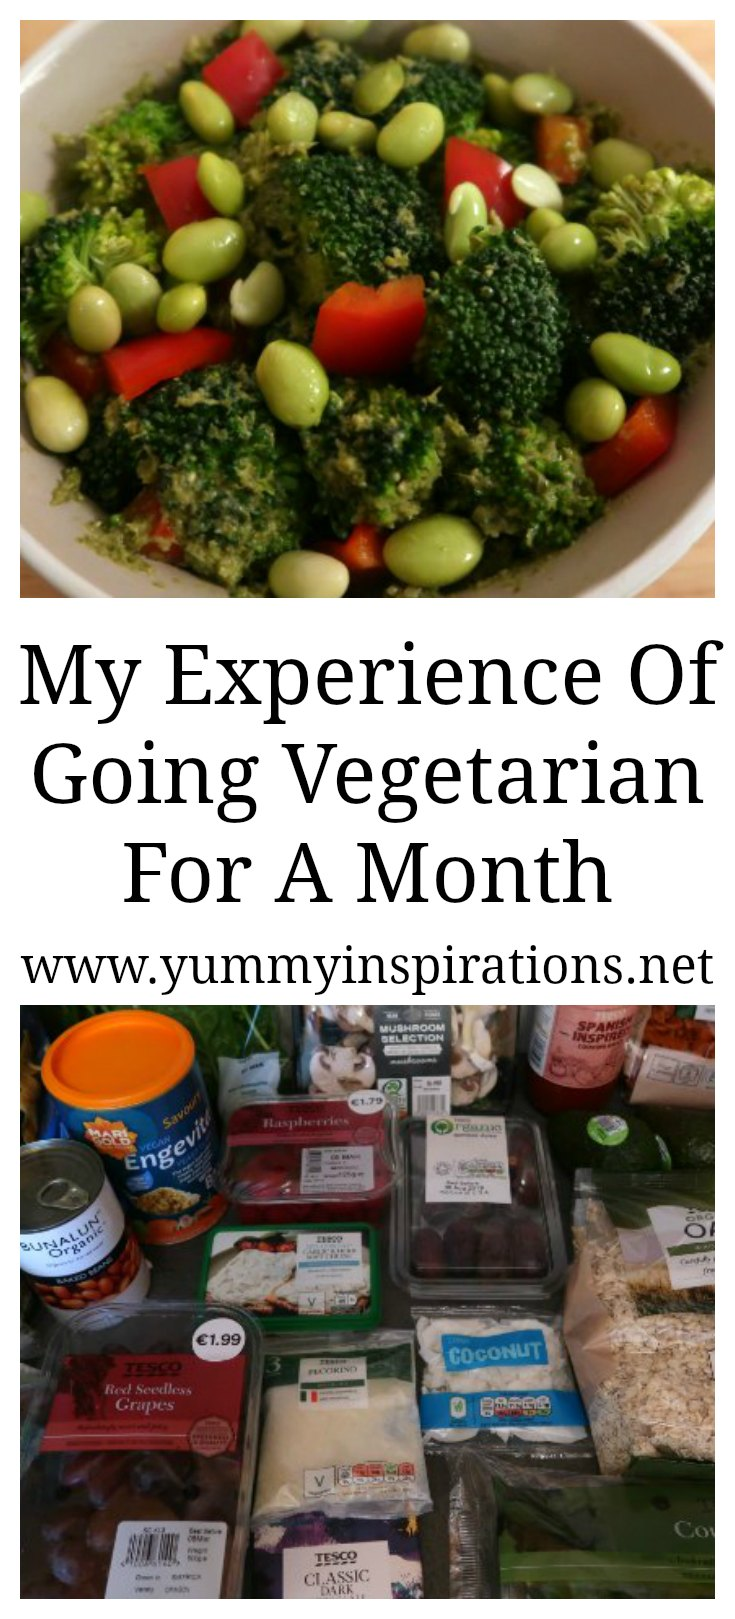 My Experience Of Going Vegetarian For A Month - the benefits and effects I've experienced after 4 weeks of following a Vegetarian Diet.